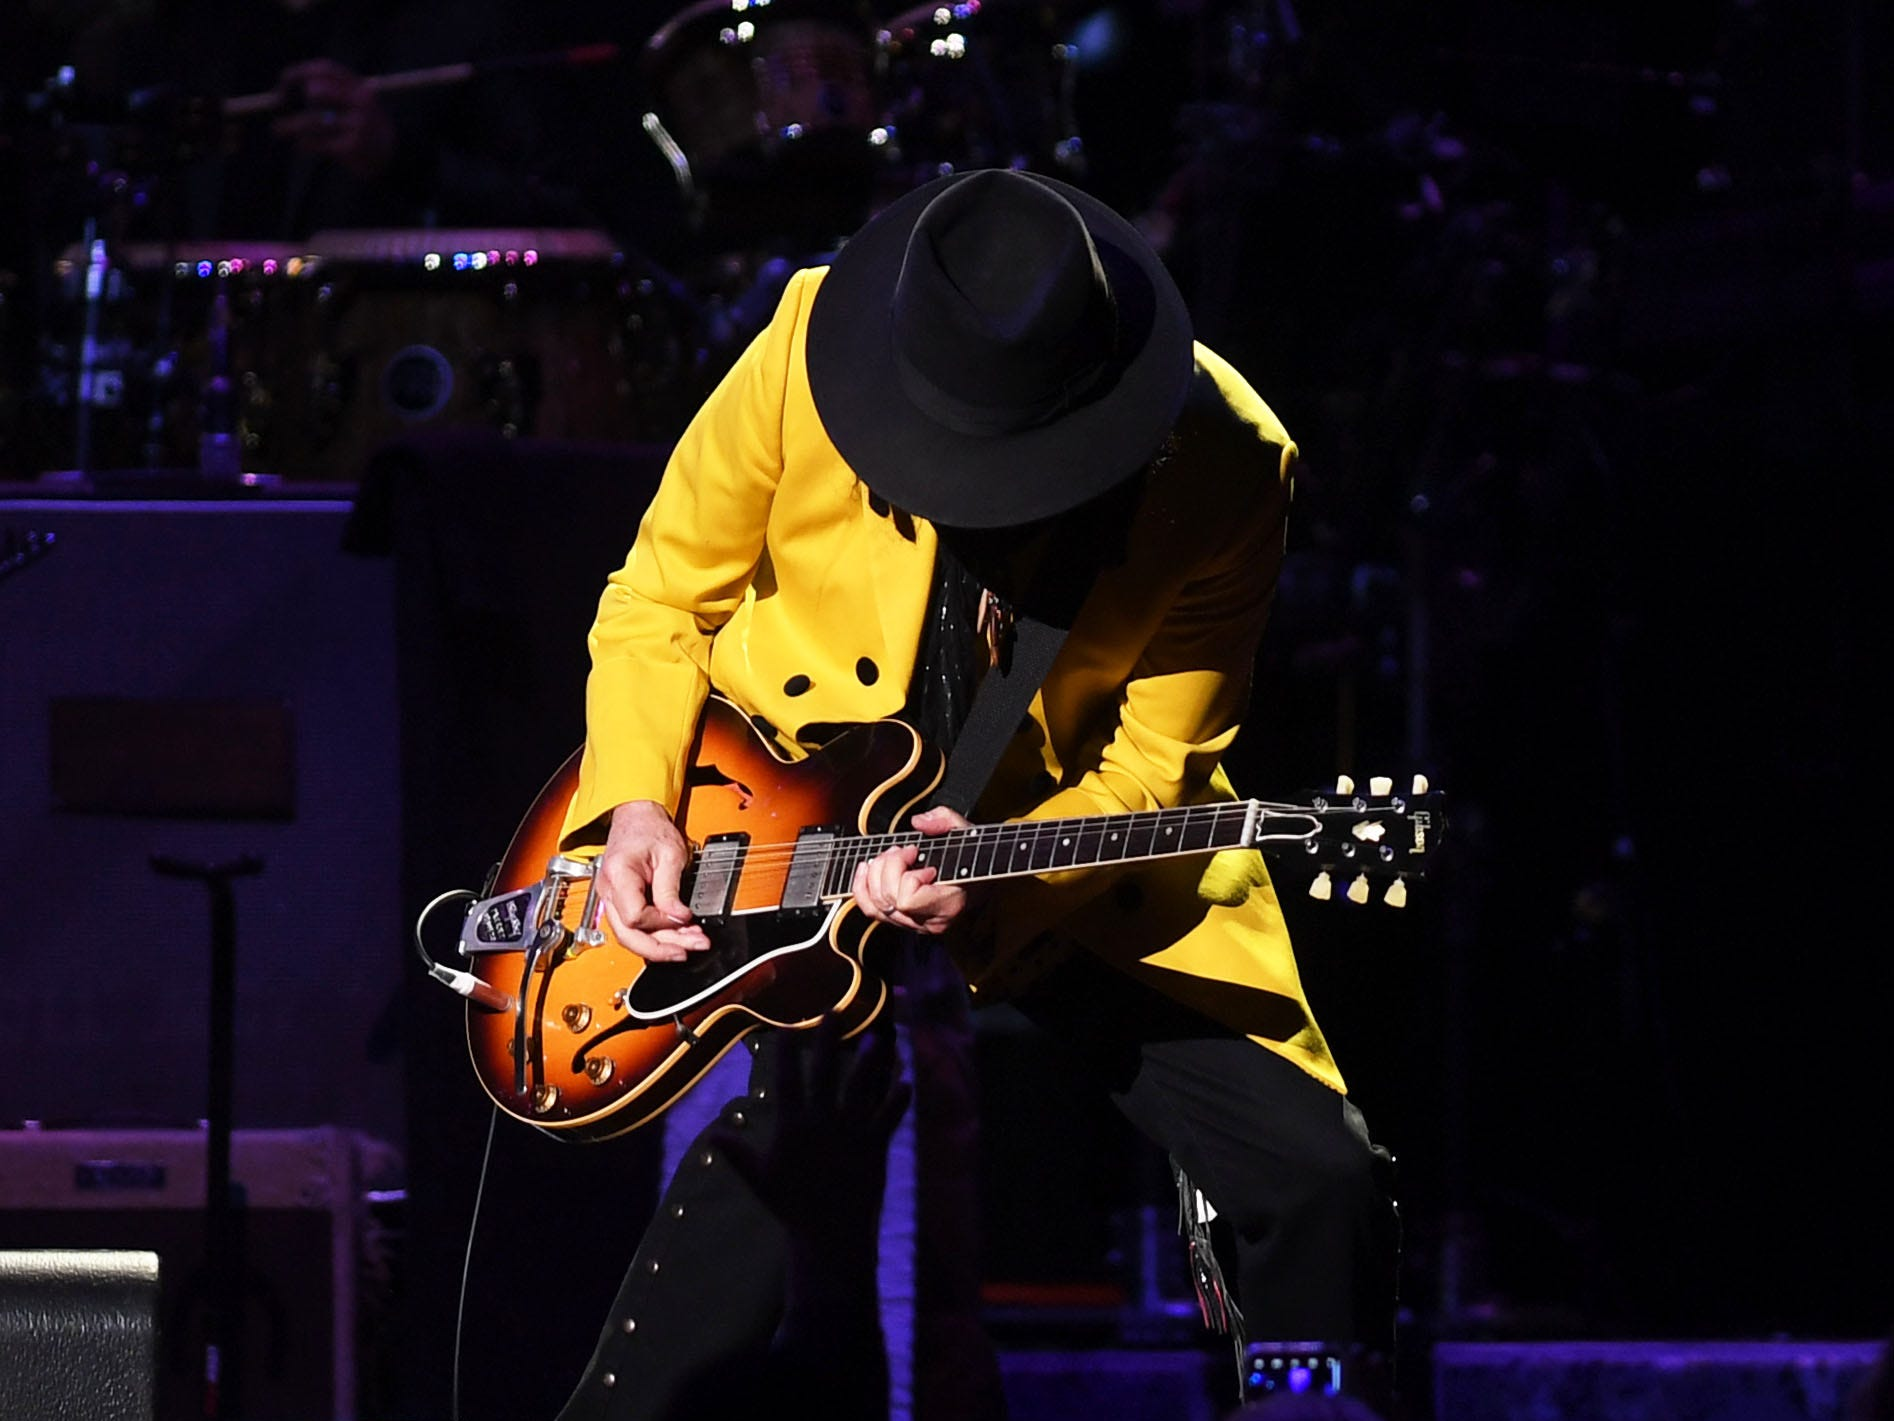 Fleetwood Mac's Mike Campbell performs at the Denny Sanford Premier Center Saturday, Feb. 2, in Sioux Falls. The new lineup included Mick Fleetwood, John McVie, Stevie Nicks, Christine McVie, Mike Campbell and Neil Finn.